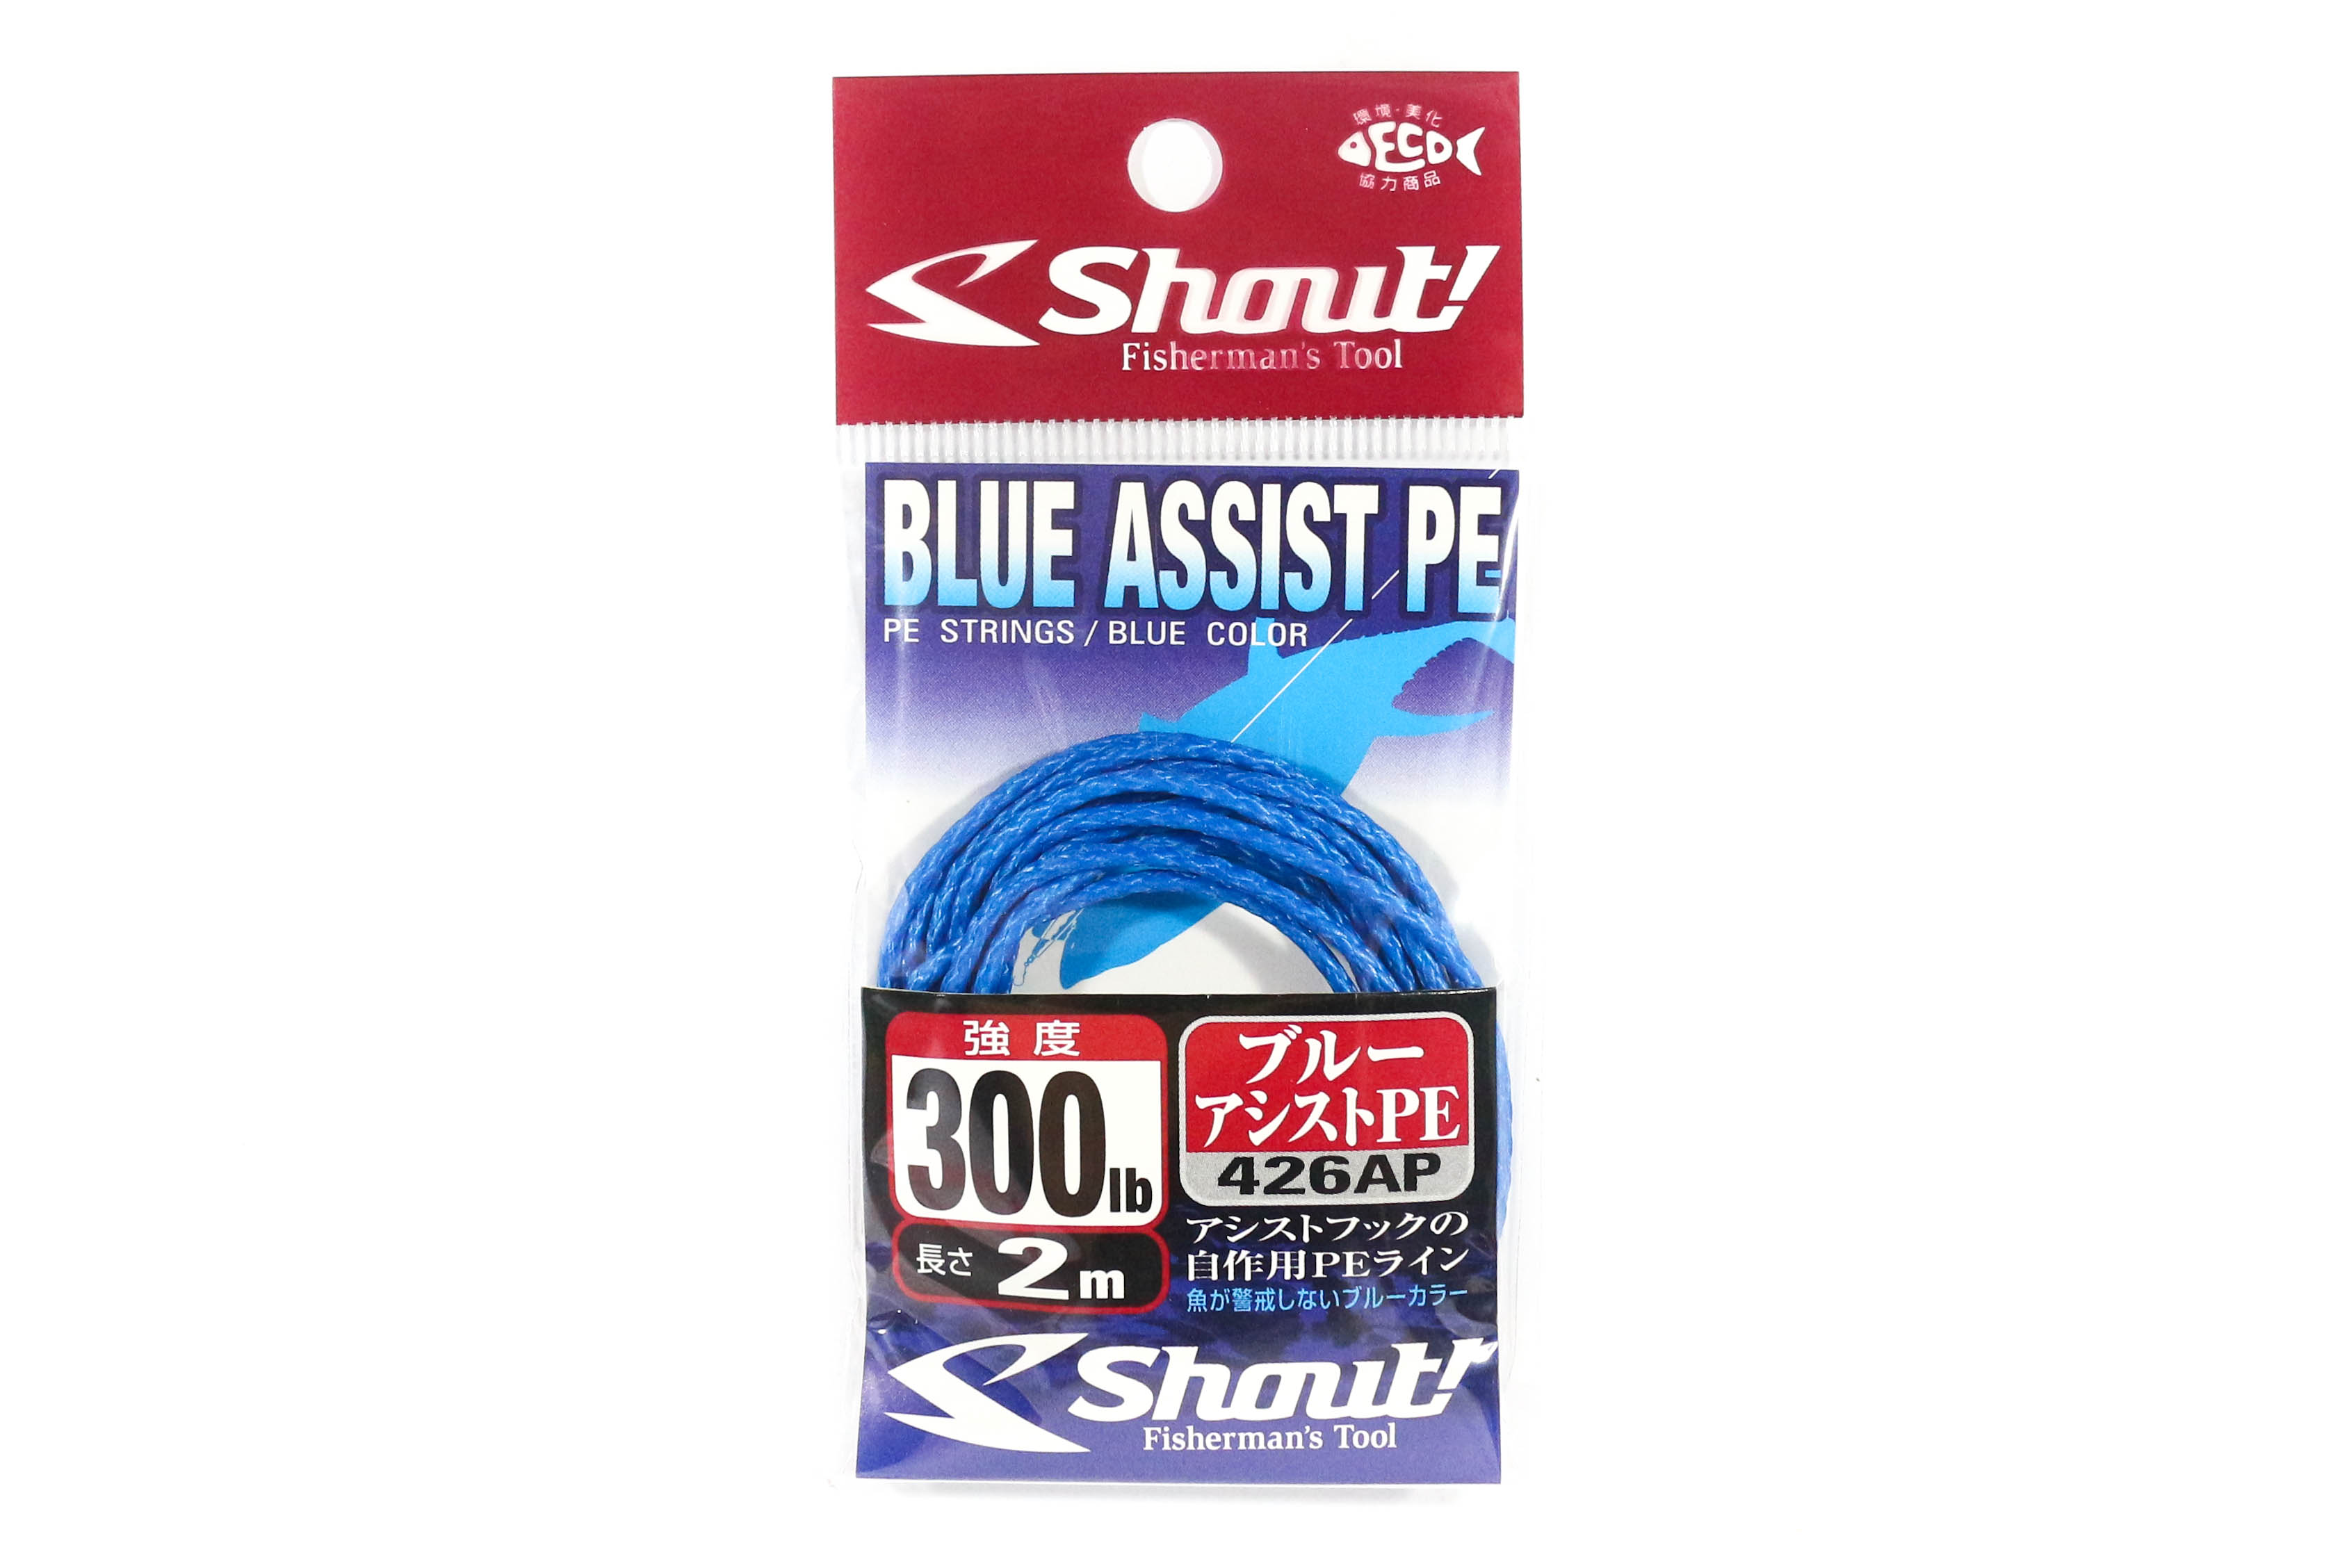 Shout 426-AP Blue Assist P.E Line Assist Rope Inner Core 2 meters 300LB (4695)